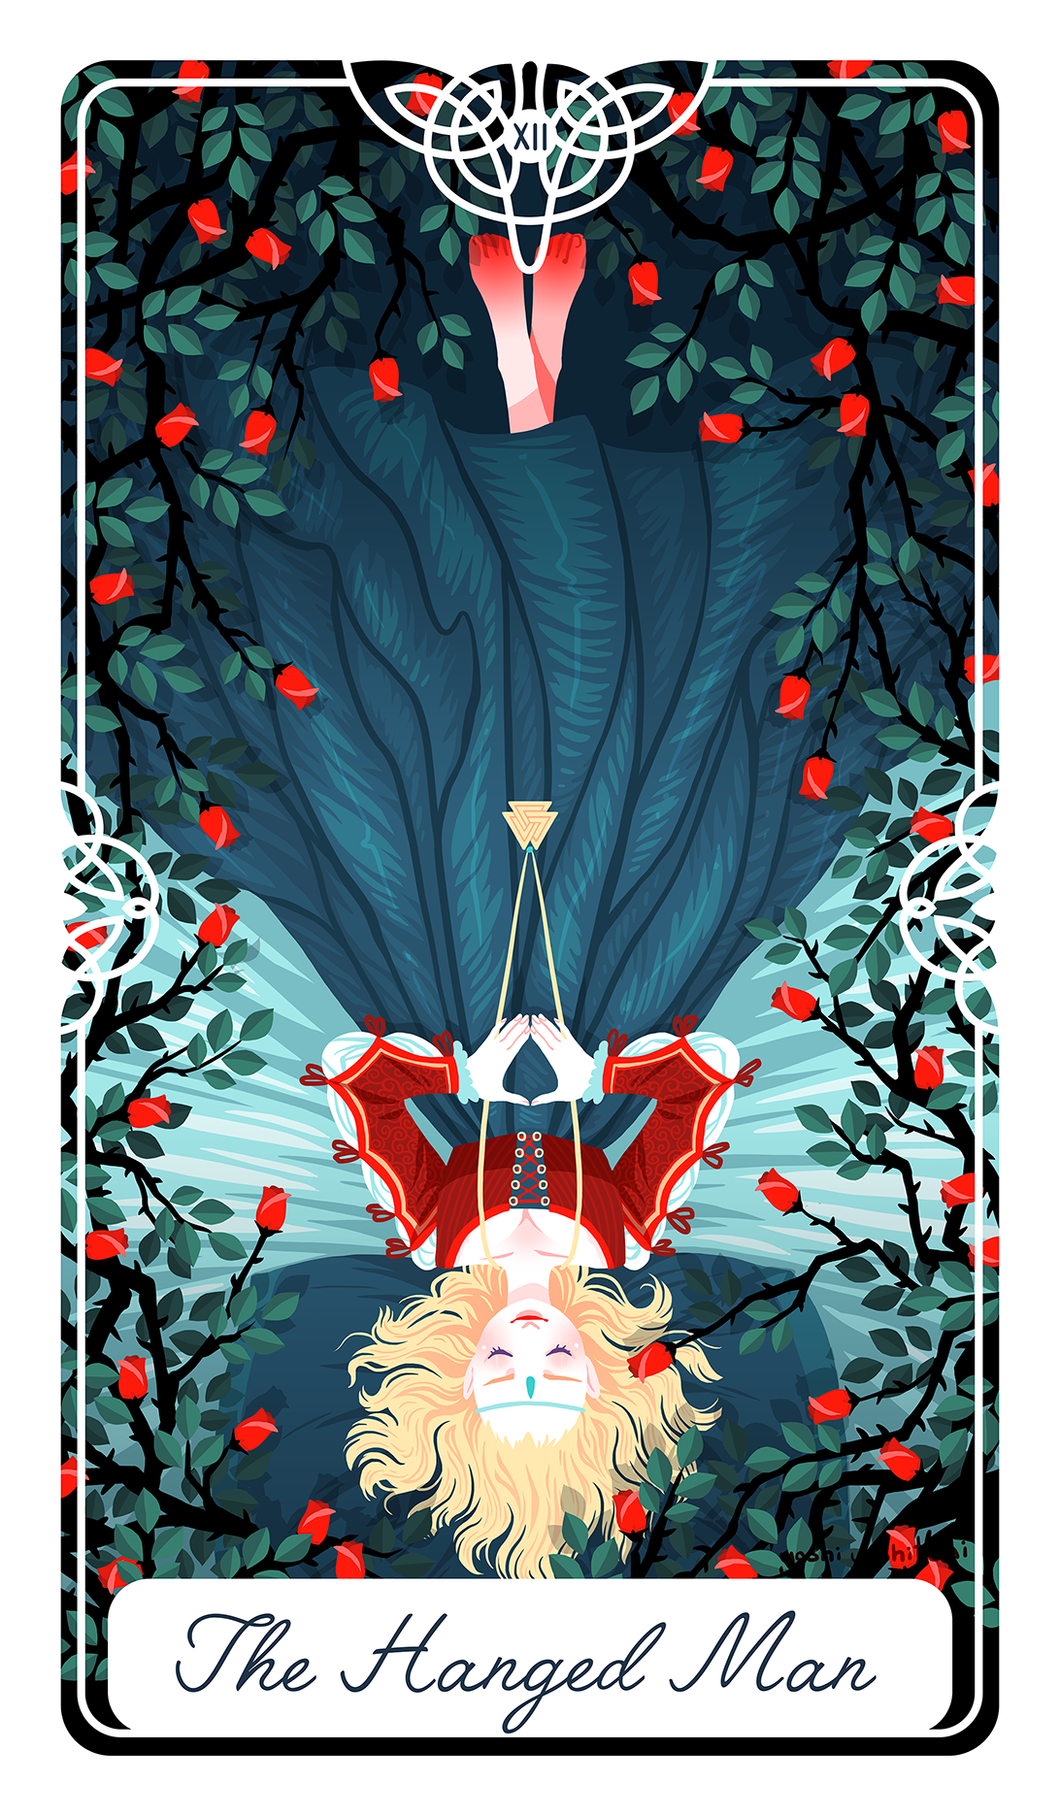 The Hanged Man Tarot Print